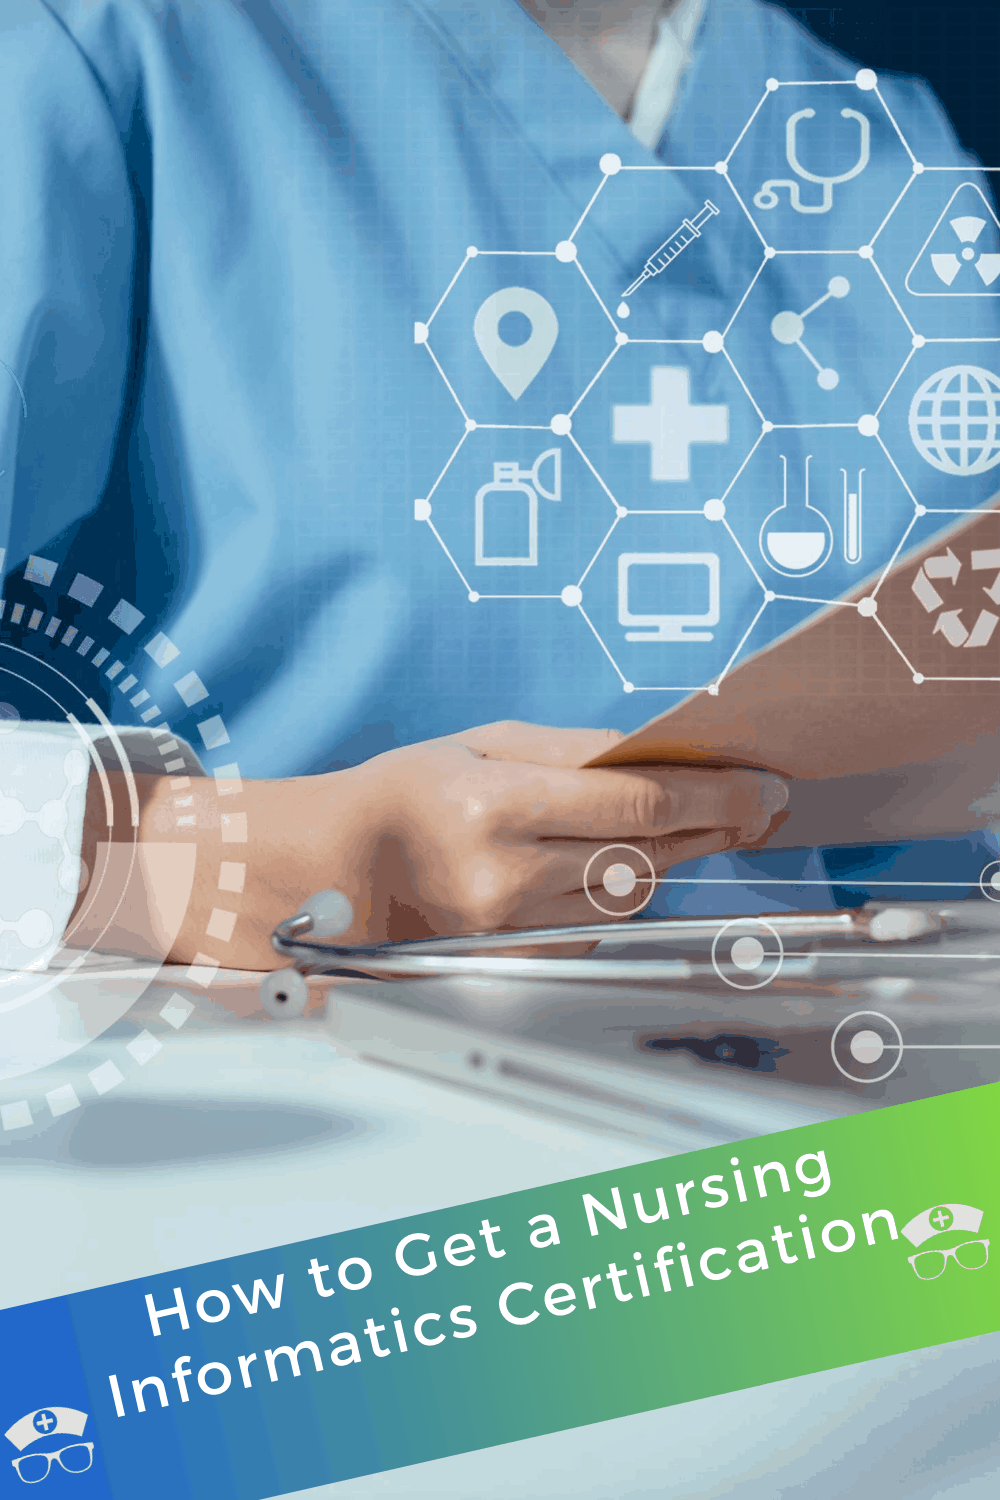 How to Get a Nursing Informatics Certification. If you have ever wanted to get into this new career field, this is everything you need to know about how to get a nursing informatics certification. #thenerdynurse #nurse #nurses #nursespeciality #informatics #certifications